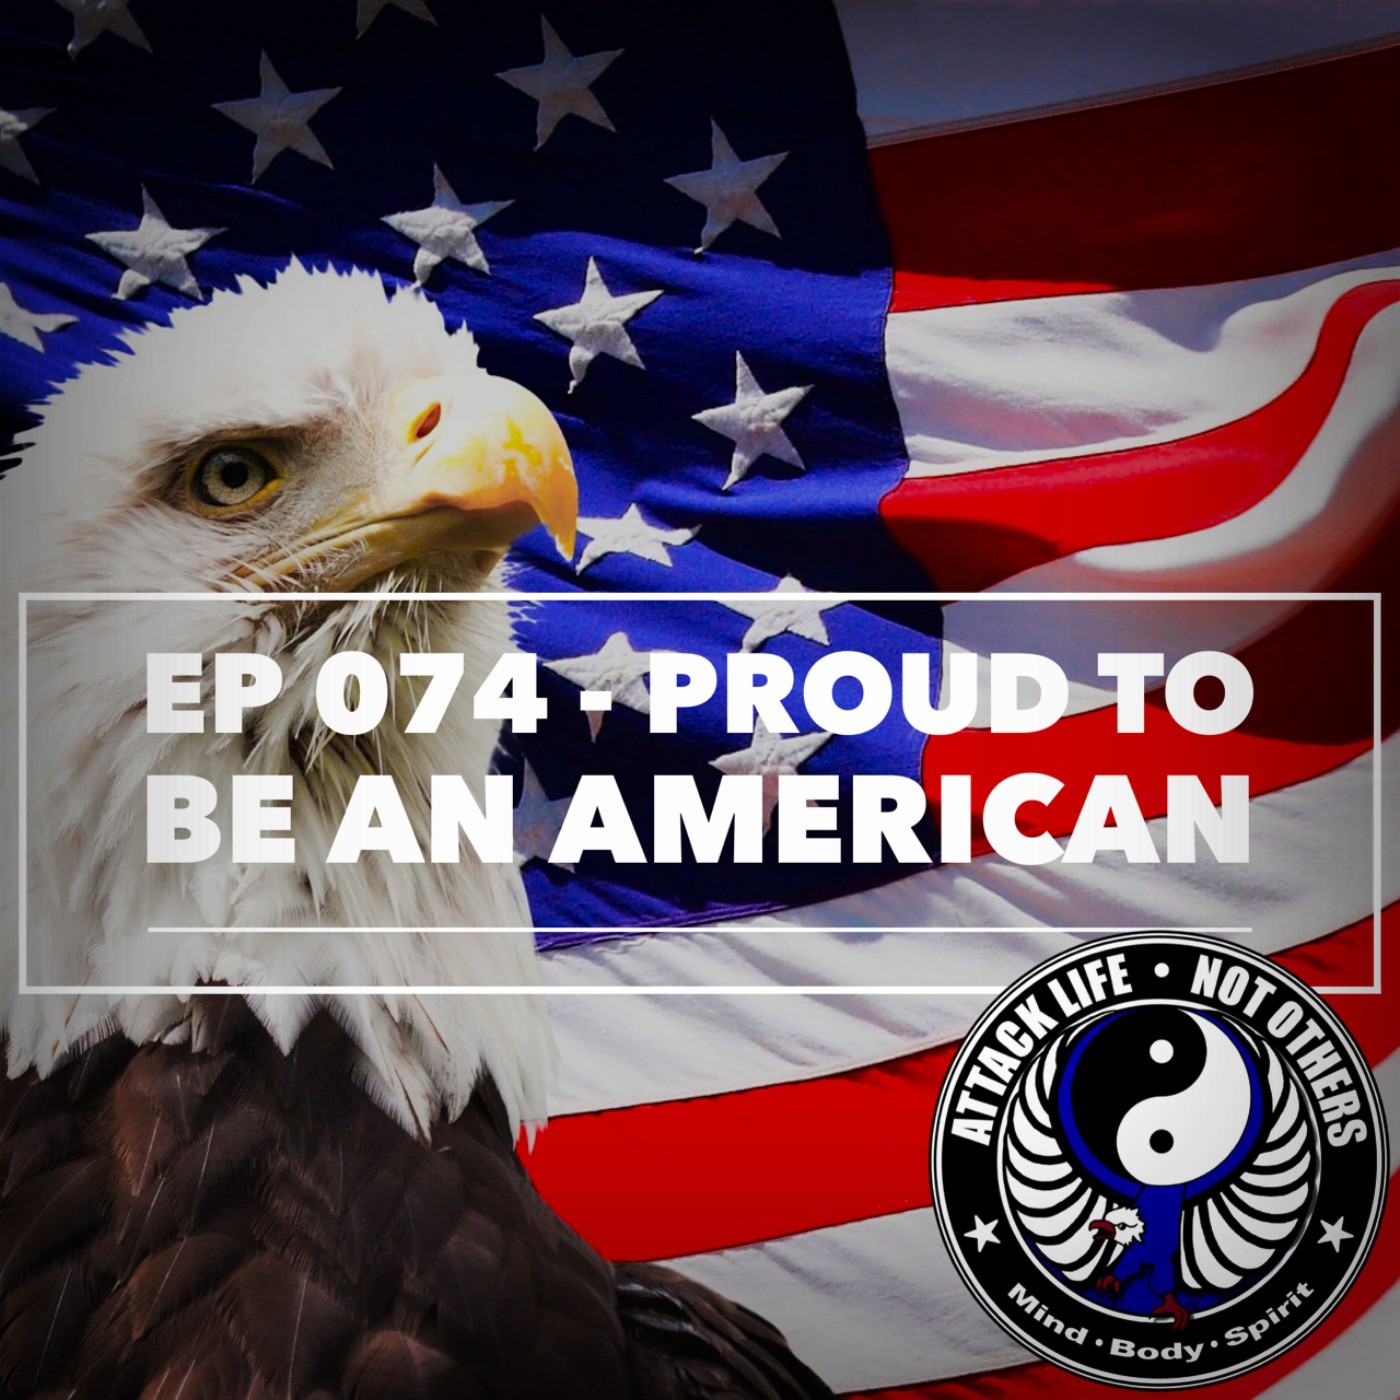 Ep 074 - Proud To Be An American